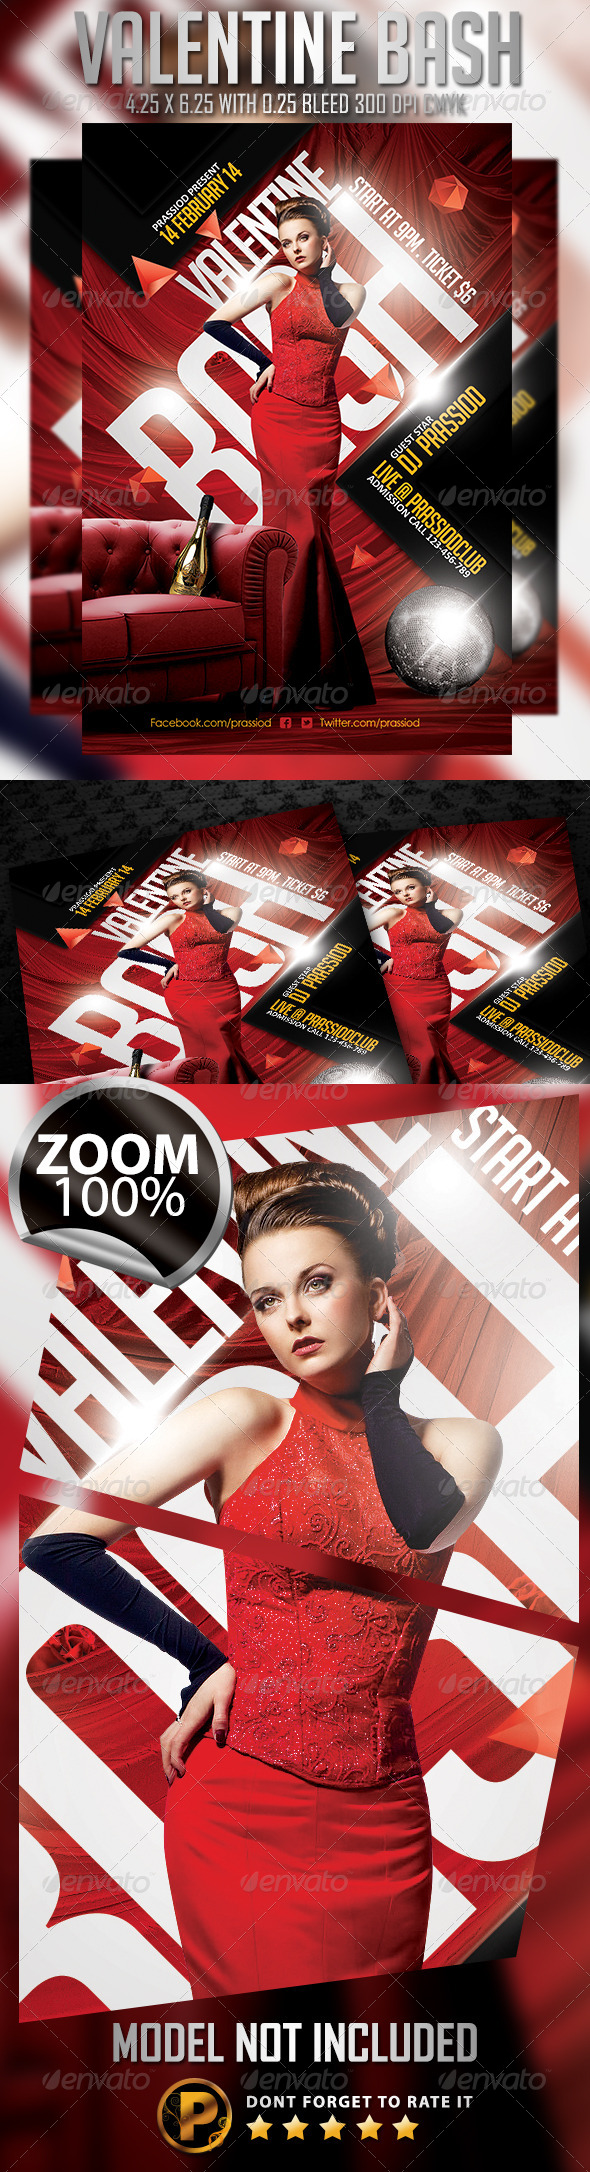 Valentine Bash Flyer Template - Clubs & Parties Events